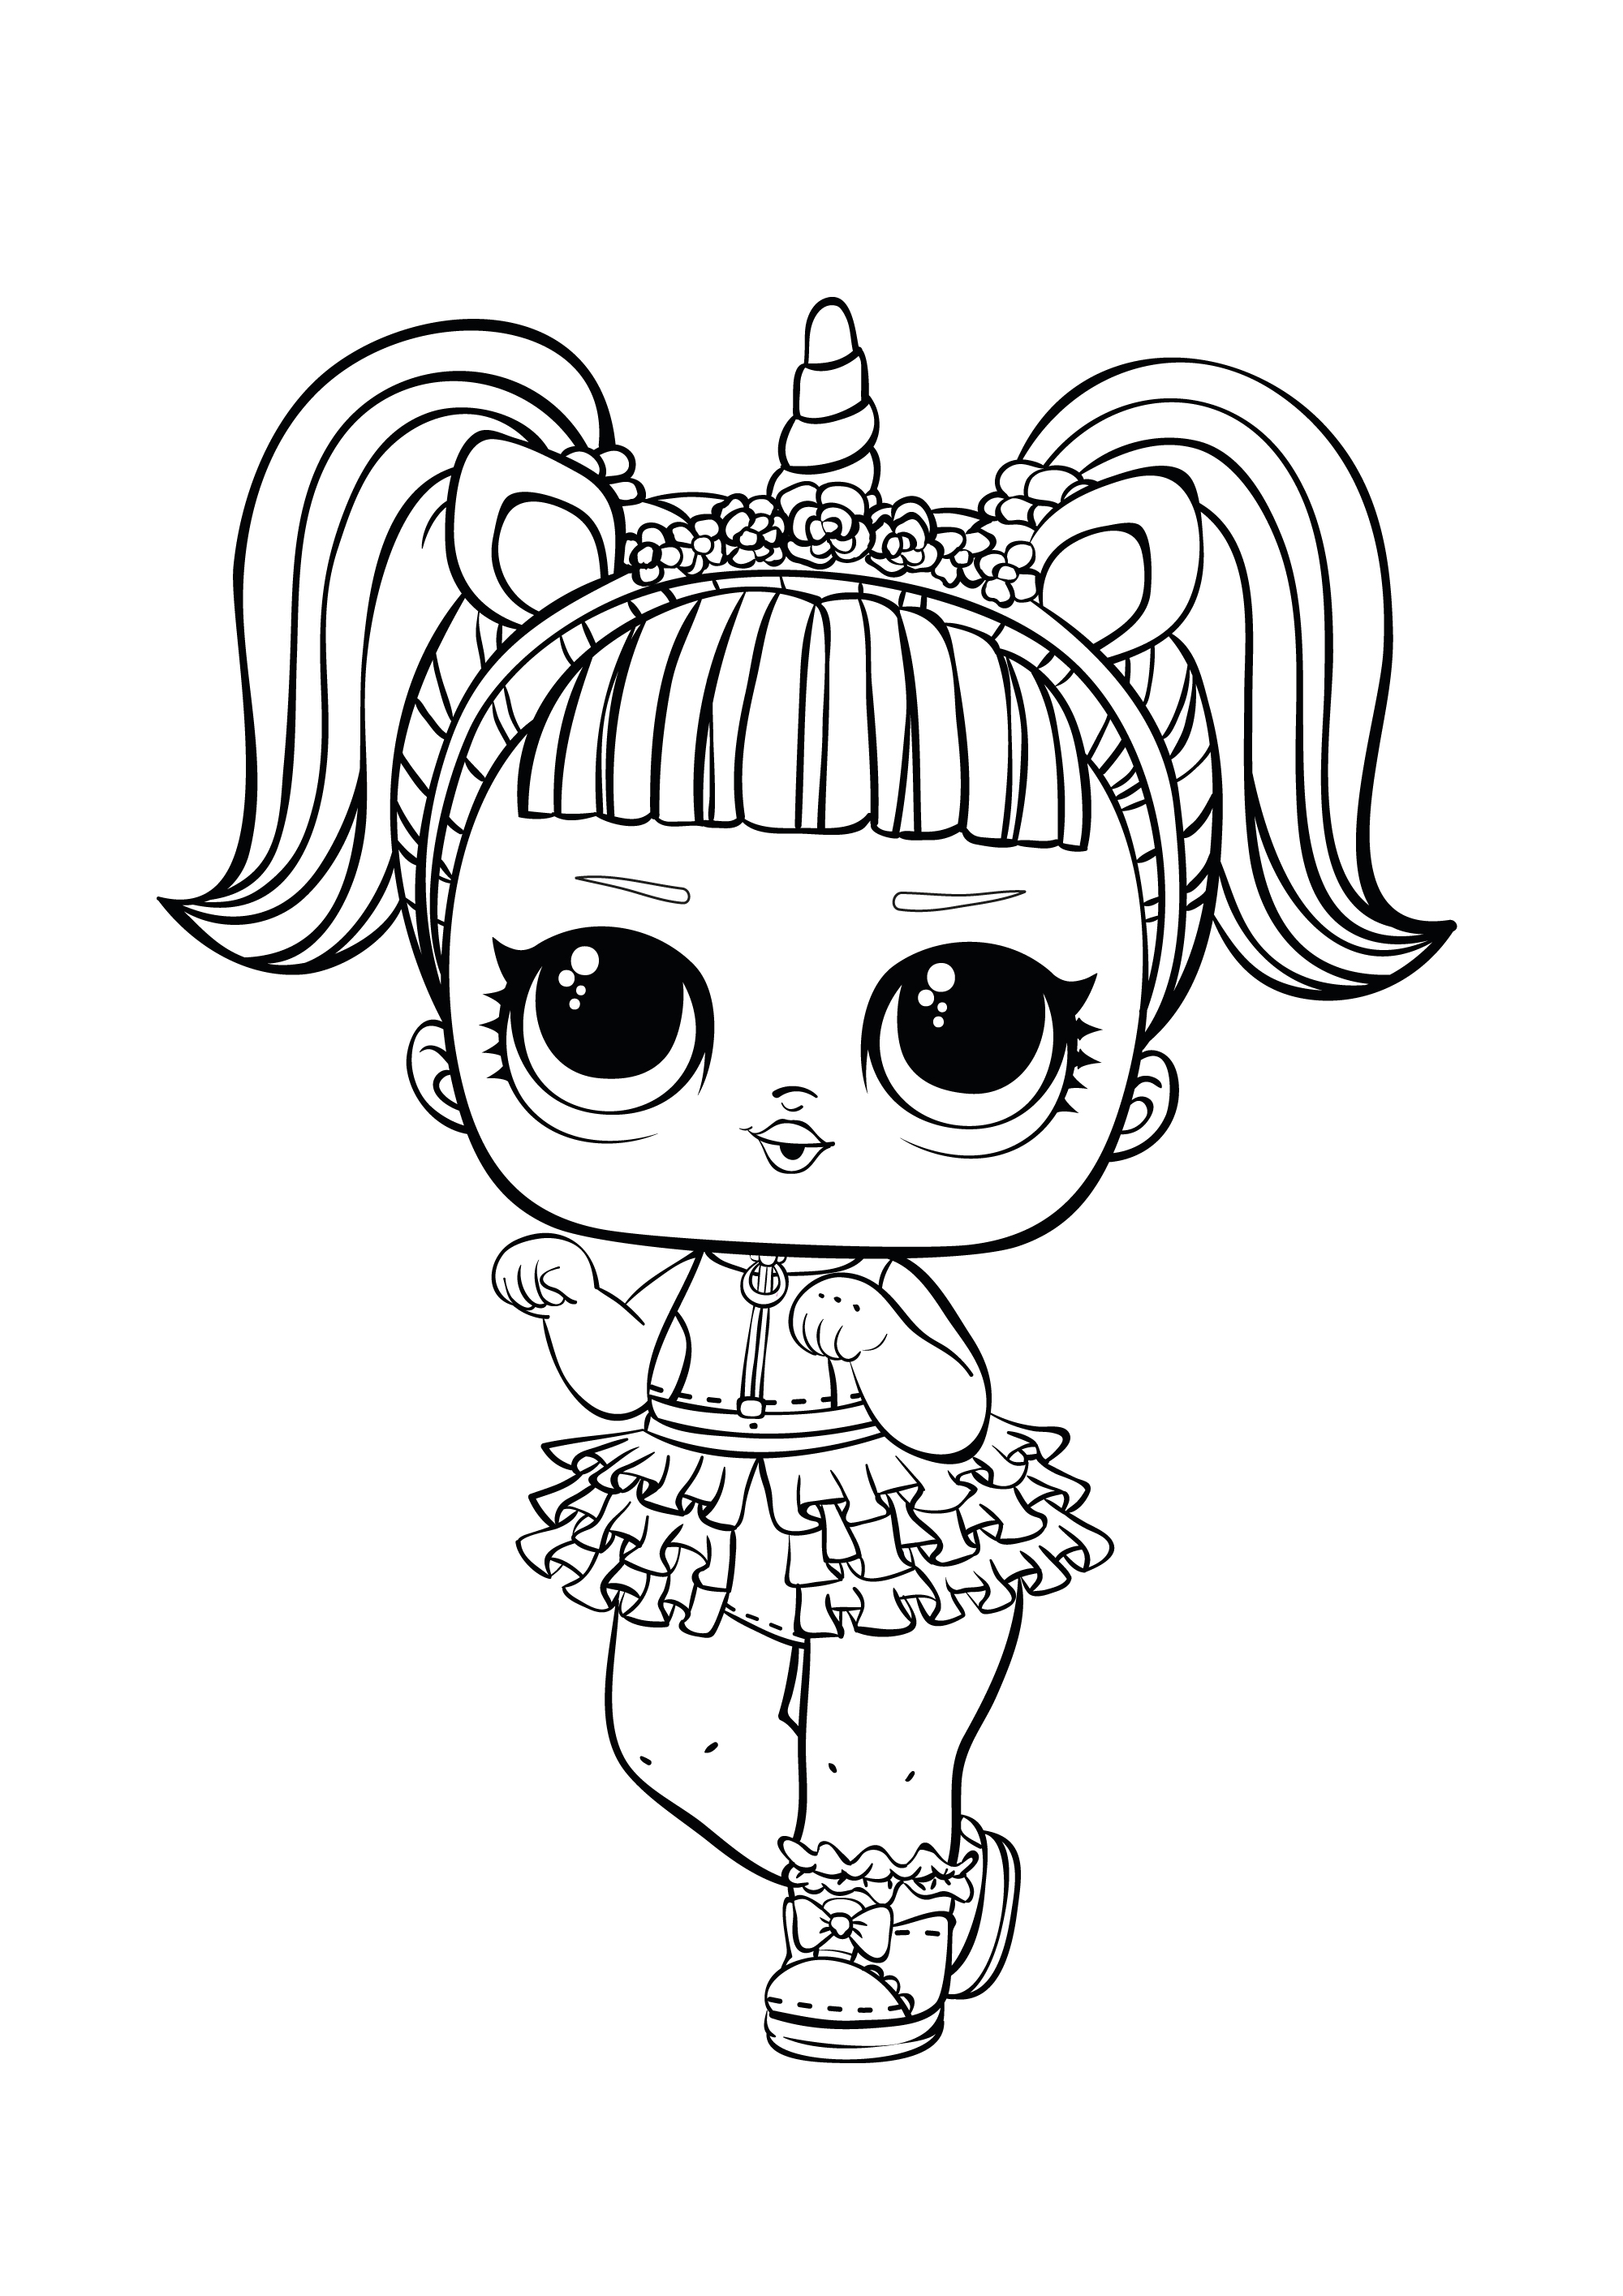 unicorn lol doll coloring page 25 inspiration image of pet coloring pages unicorn unicorn lol doll coloring page